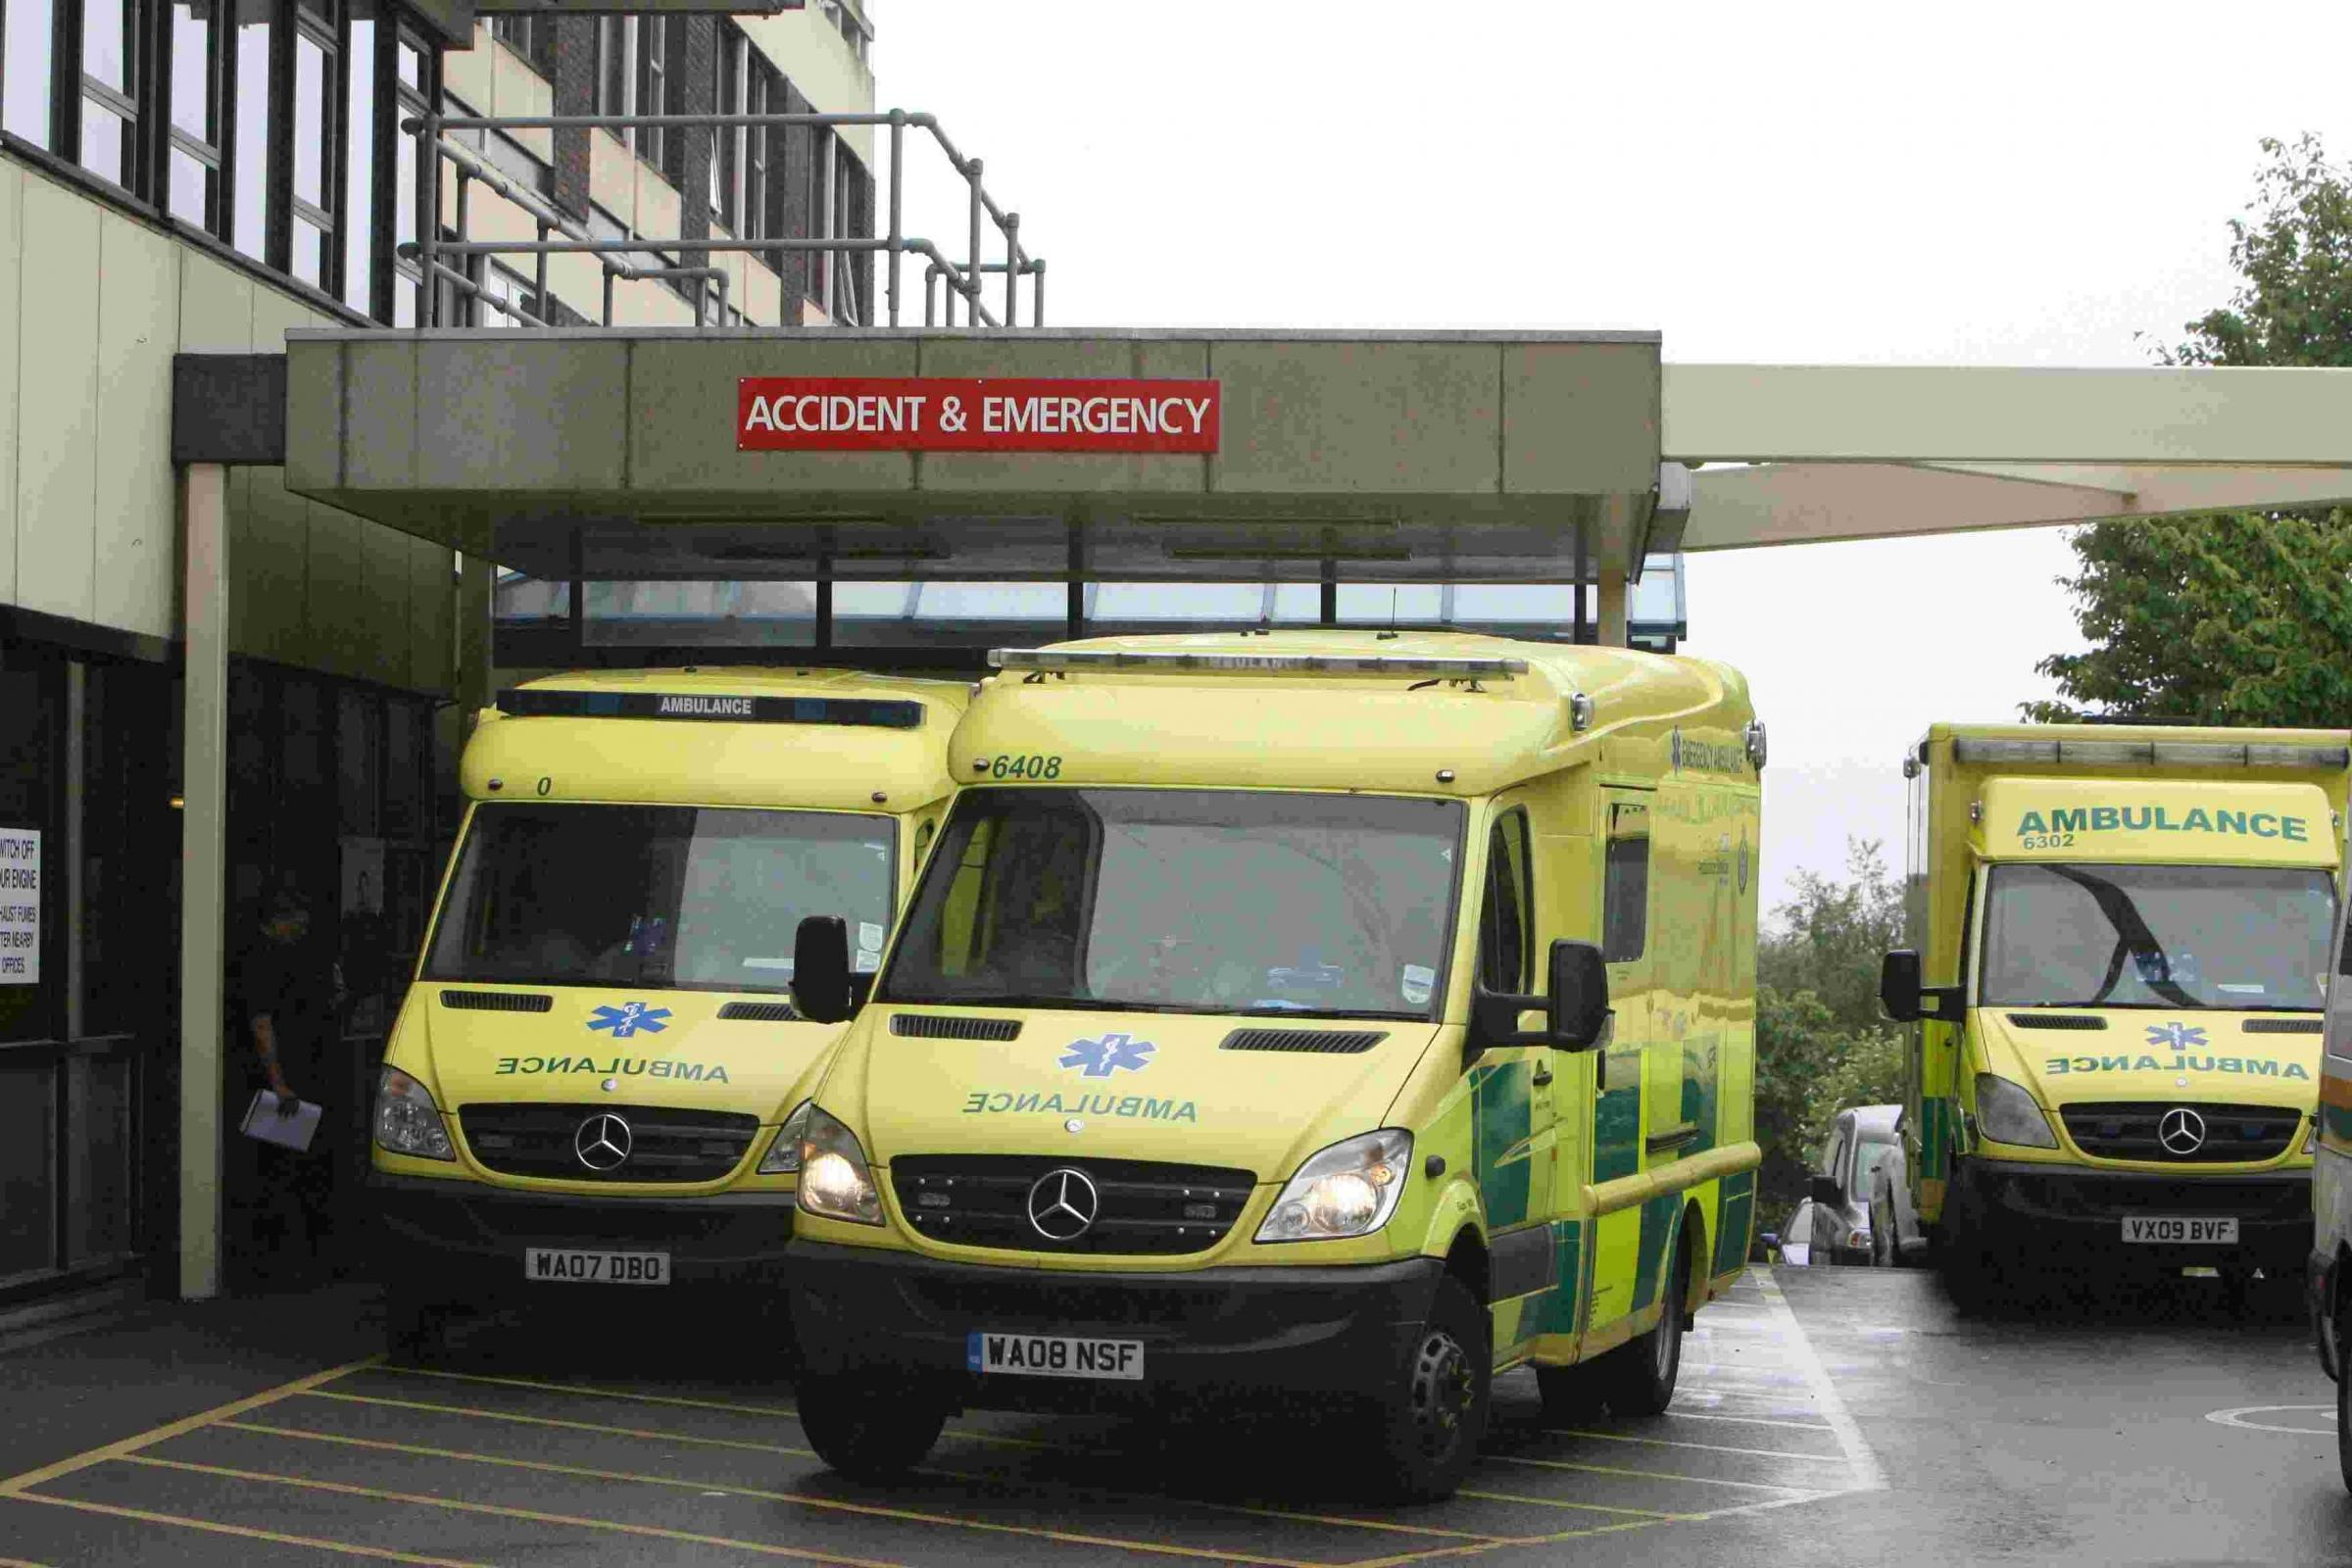 General views of Poole Hospital with ambulances outside Accident and Emergency